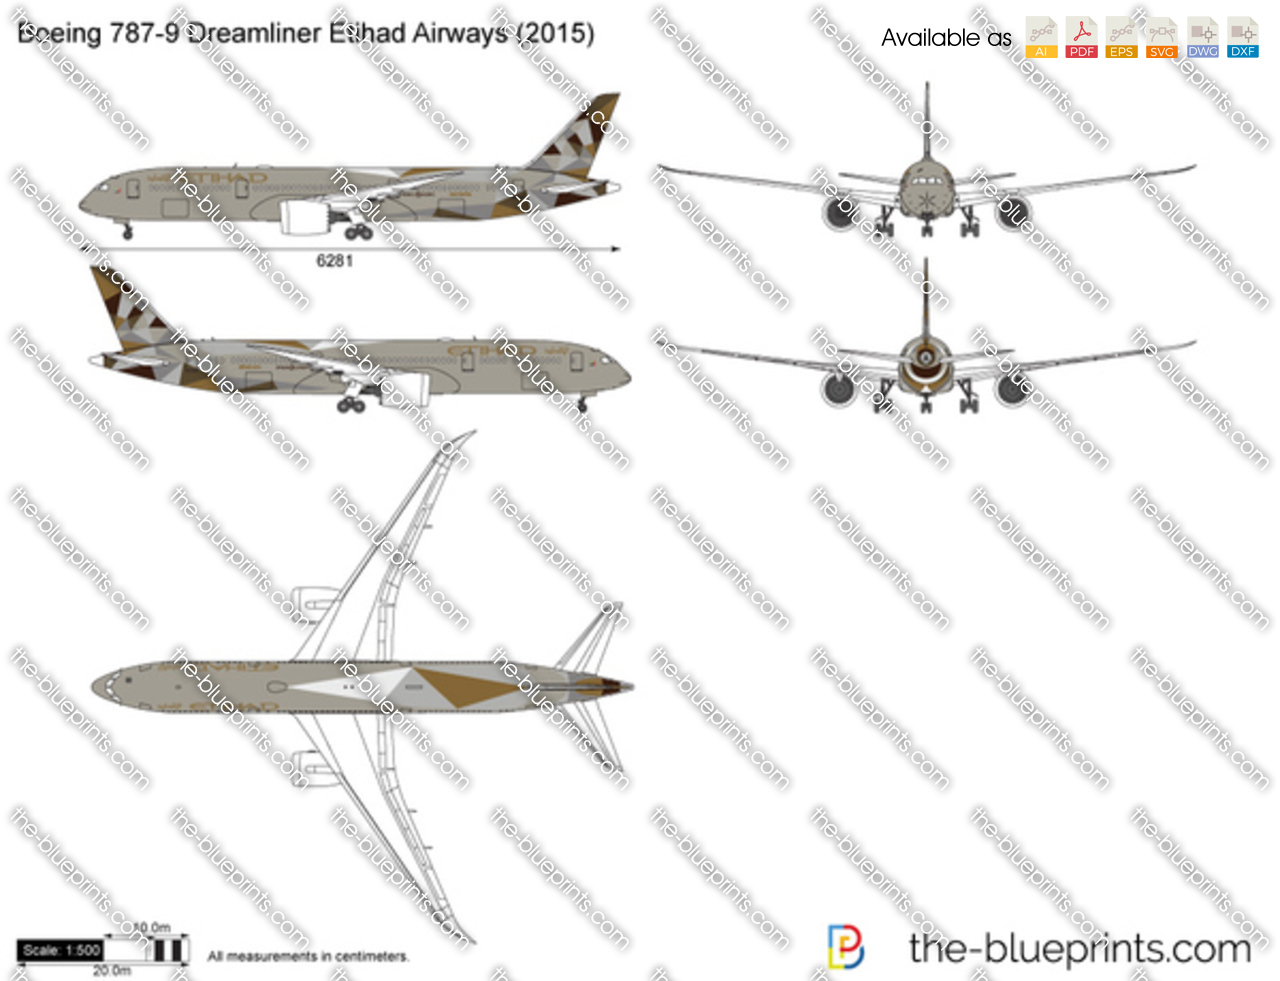 Boeing 787-9 Dreamliner Etihad Airways 2018